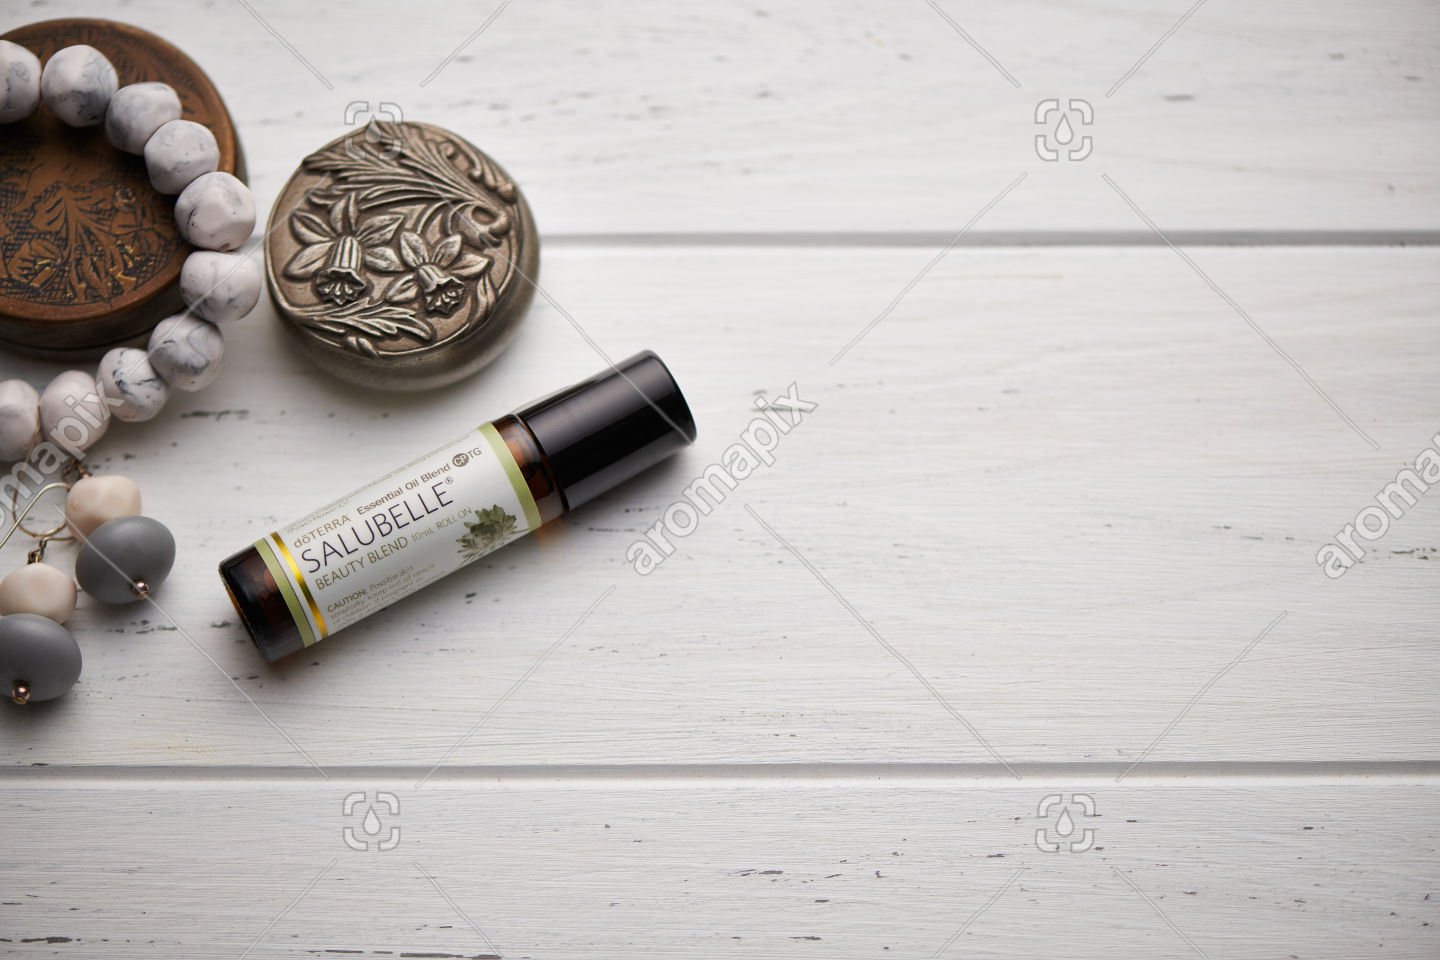 doTERRA Salubelle on rustic background